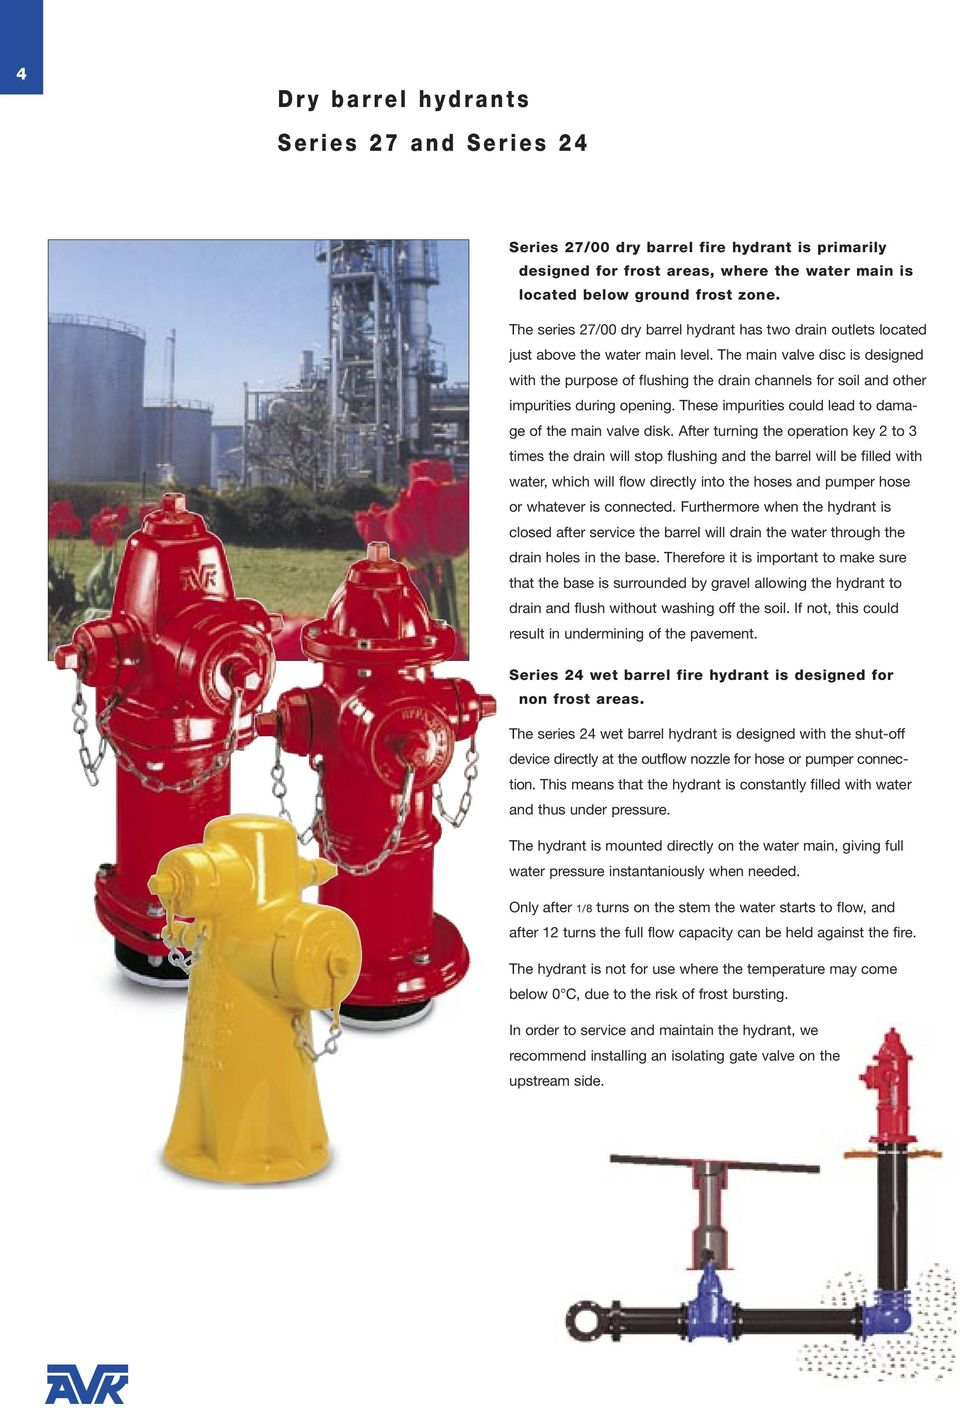 Fire hydrant: device and principle of operation, installation requirements 77